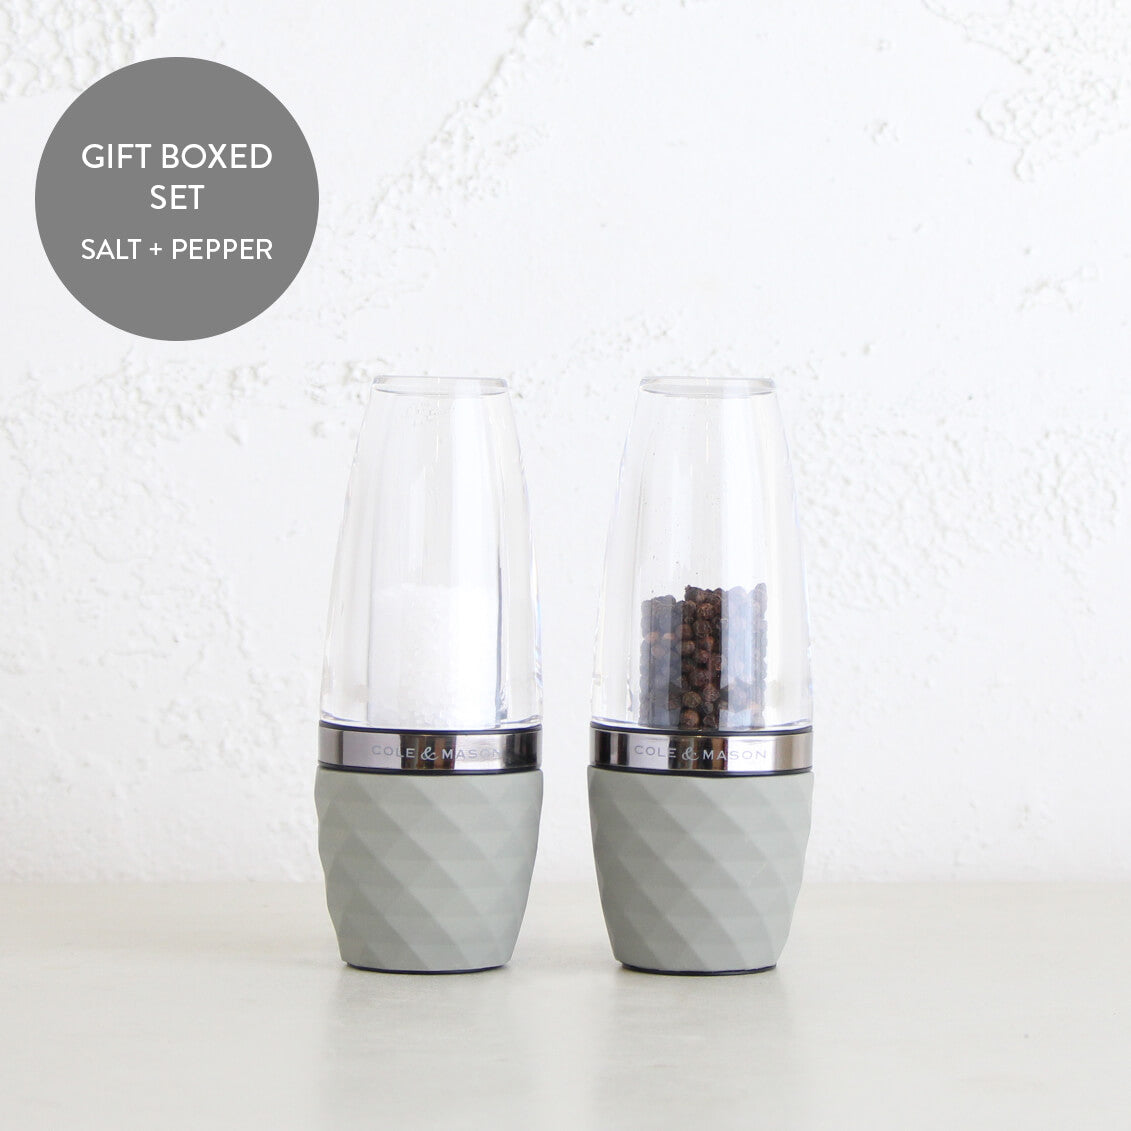 COLE & MASON  |  CITY SALT + PEPPER GRINDER GIFT SET  |  CONCRETE